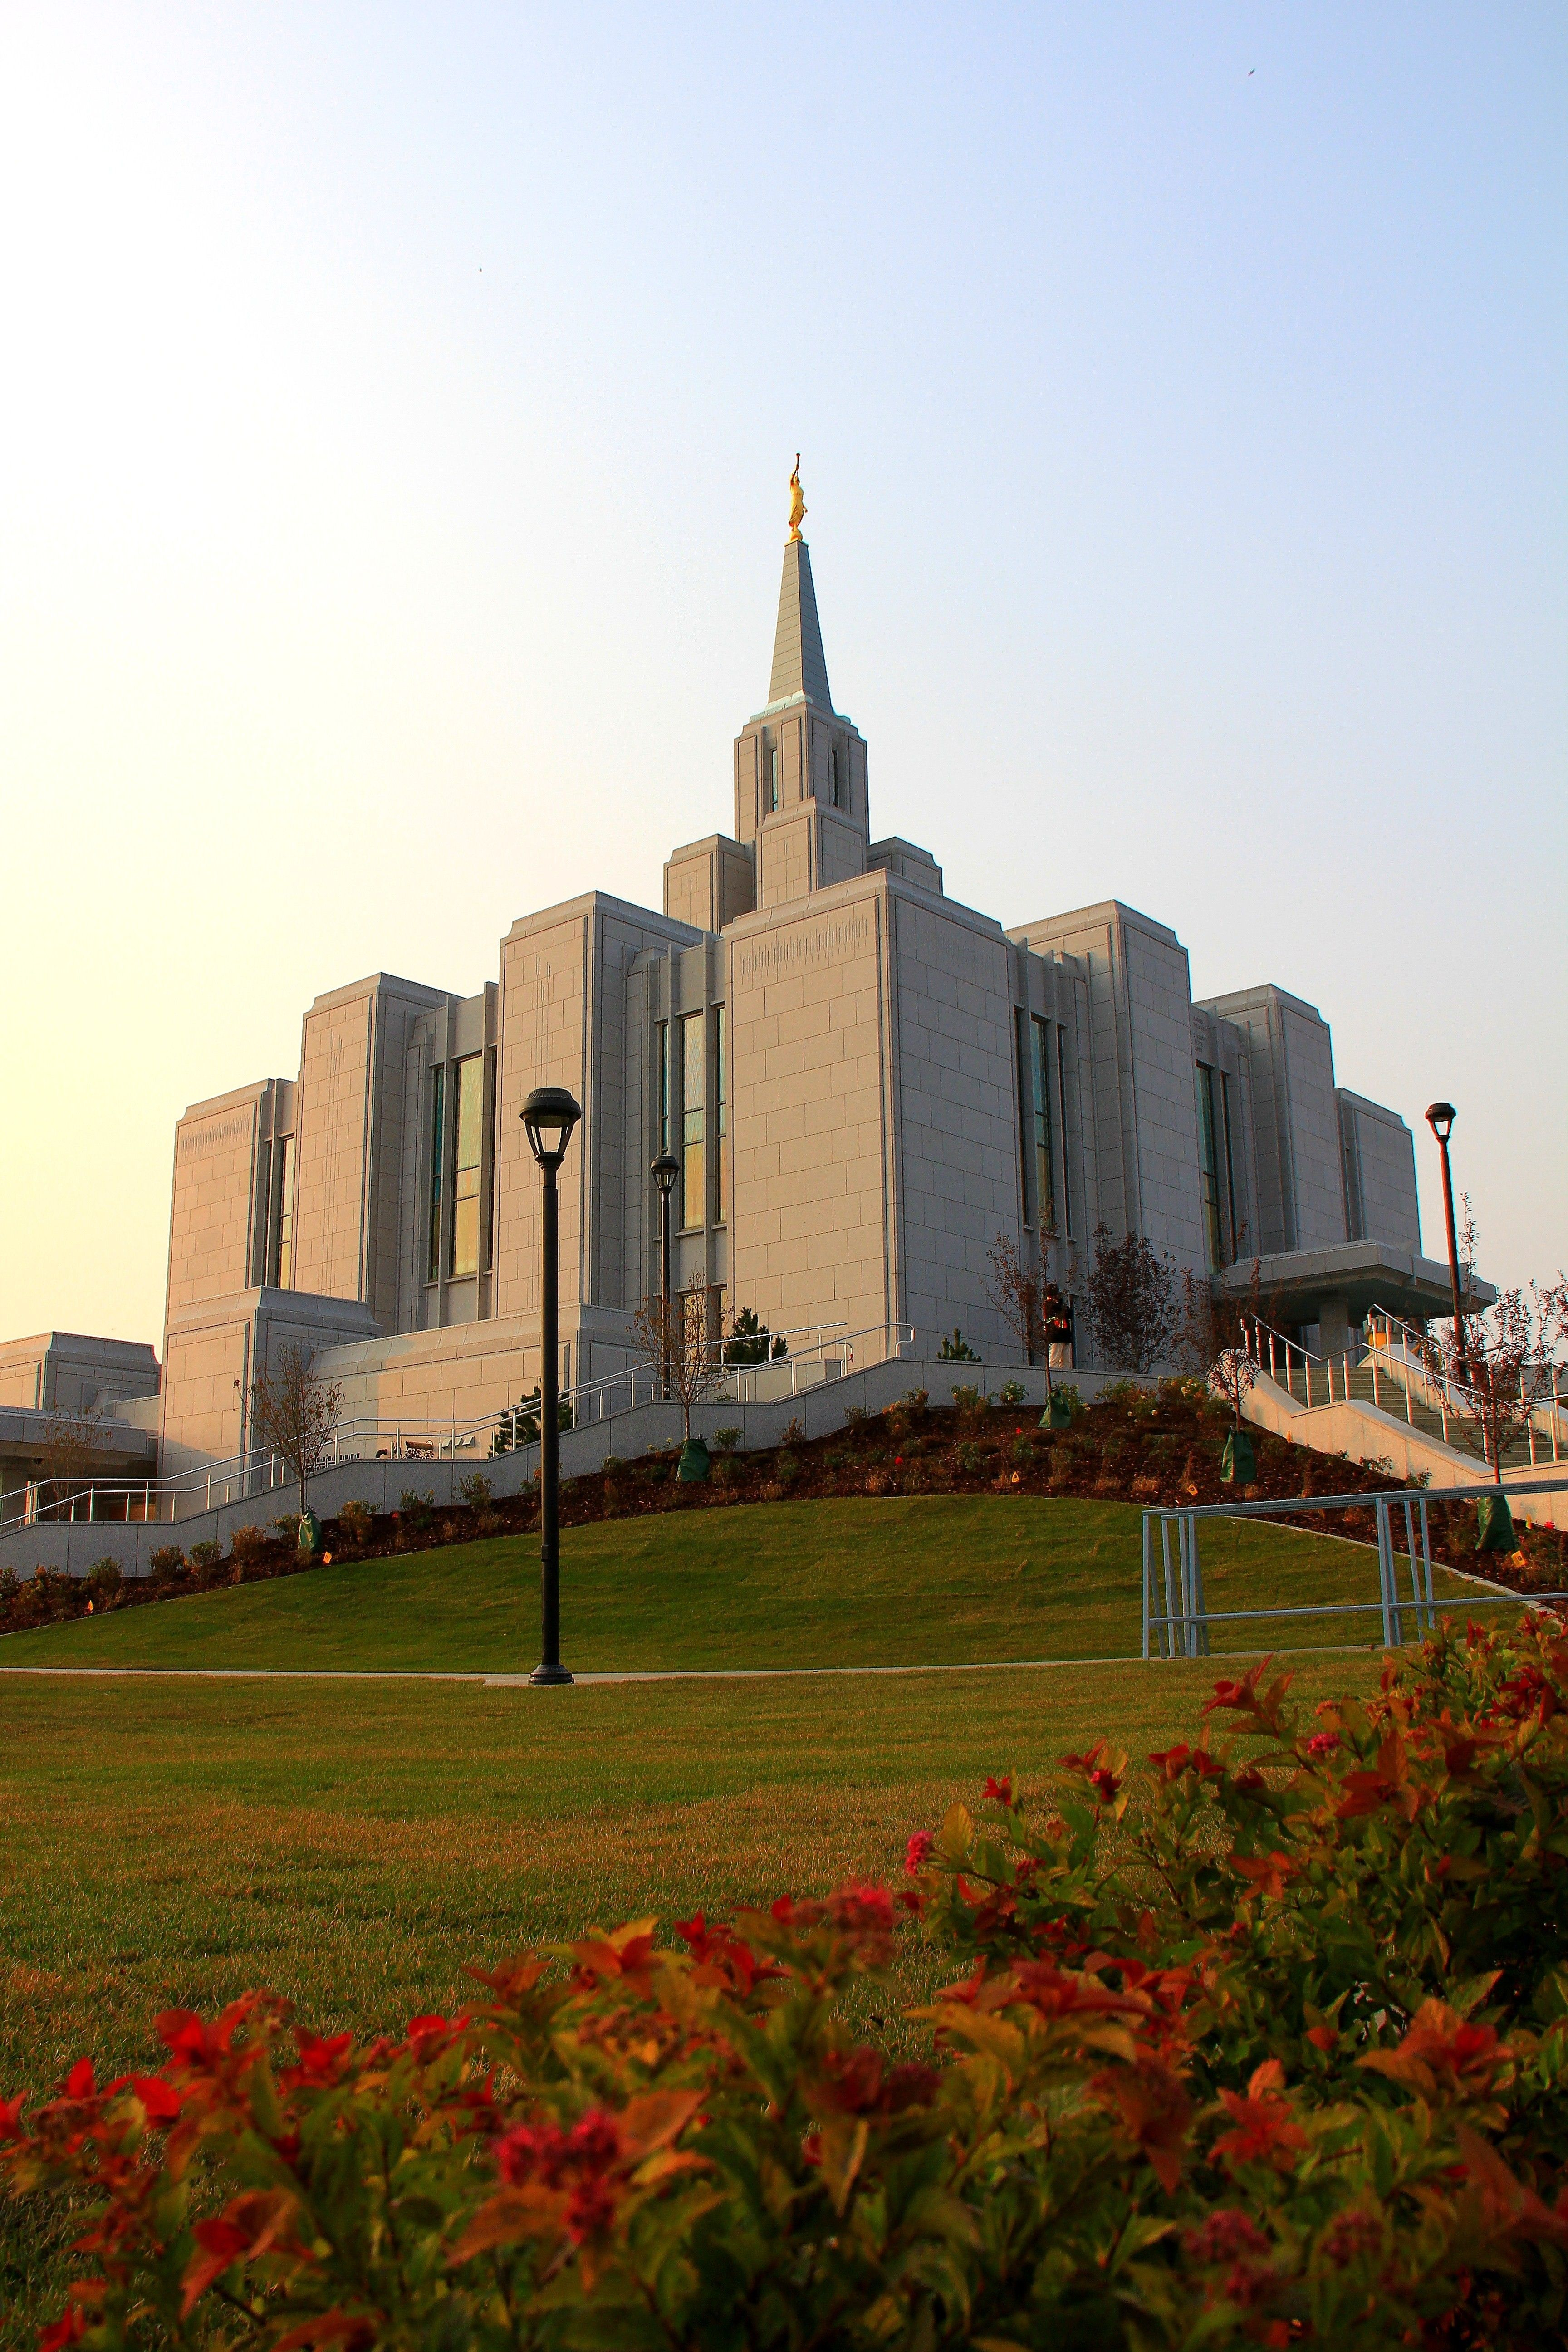 A portrait view of the Calgary Alberta Temple from the temple grounds during the evening.